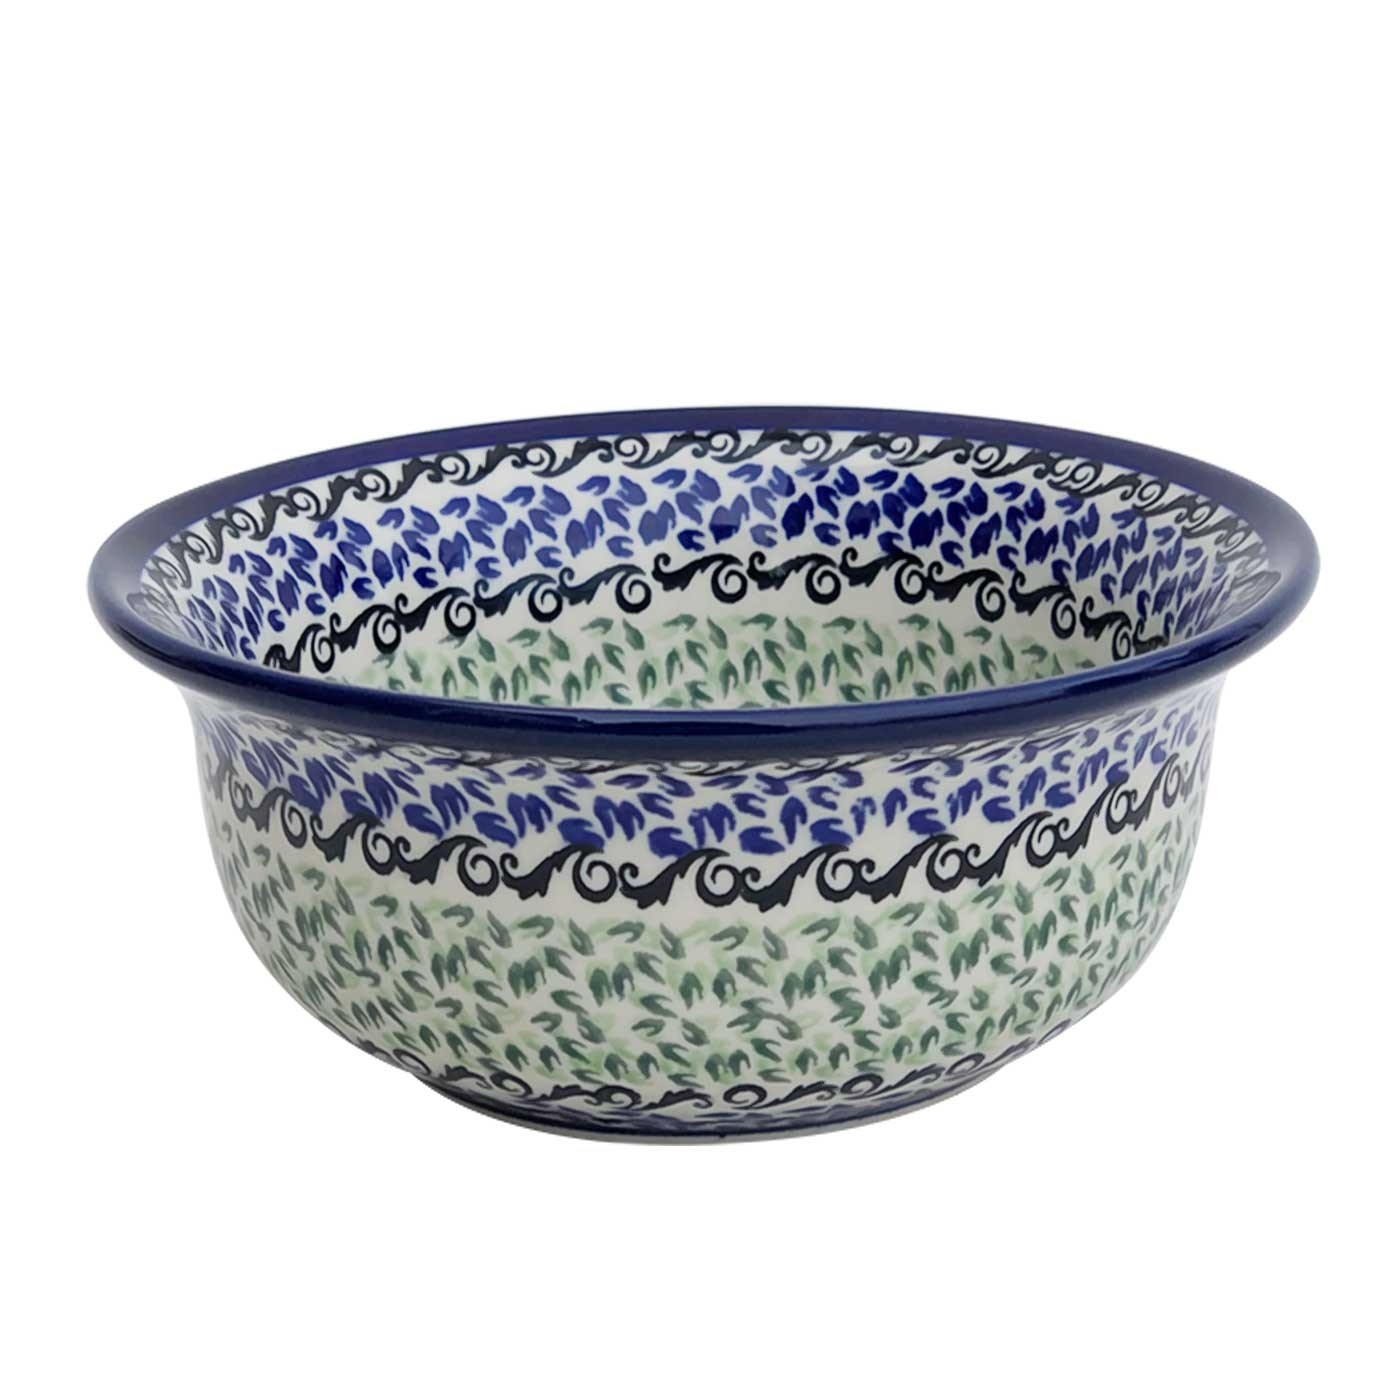 Pottery Avenue Artisan Flared Top Stoneware Bowl - 1604-1182A Celebrate